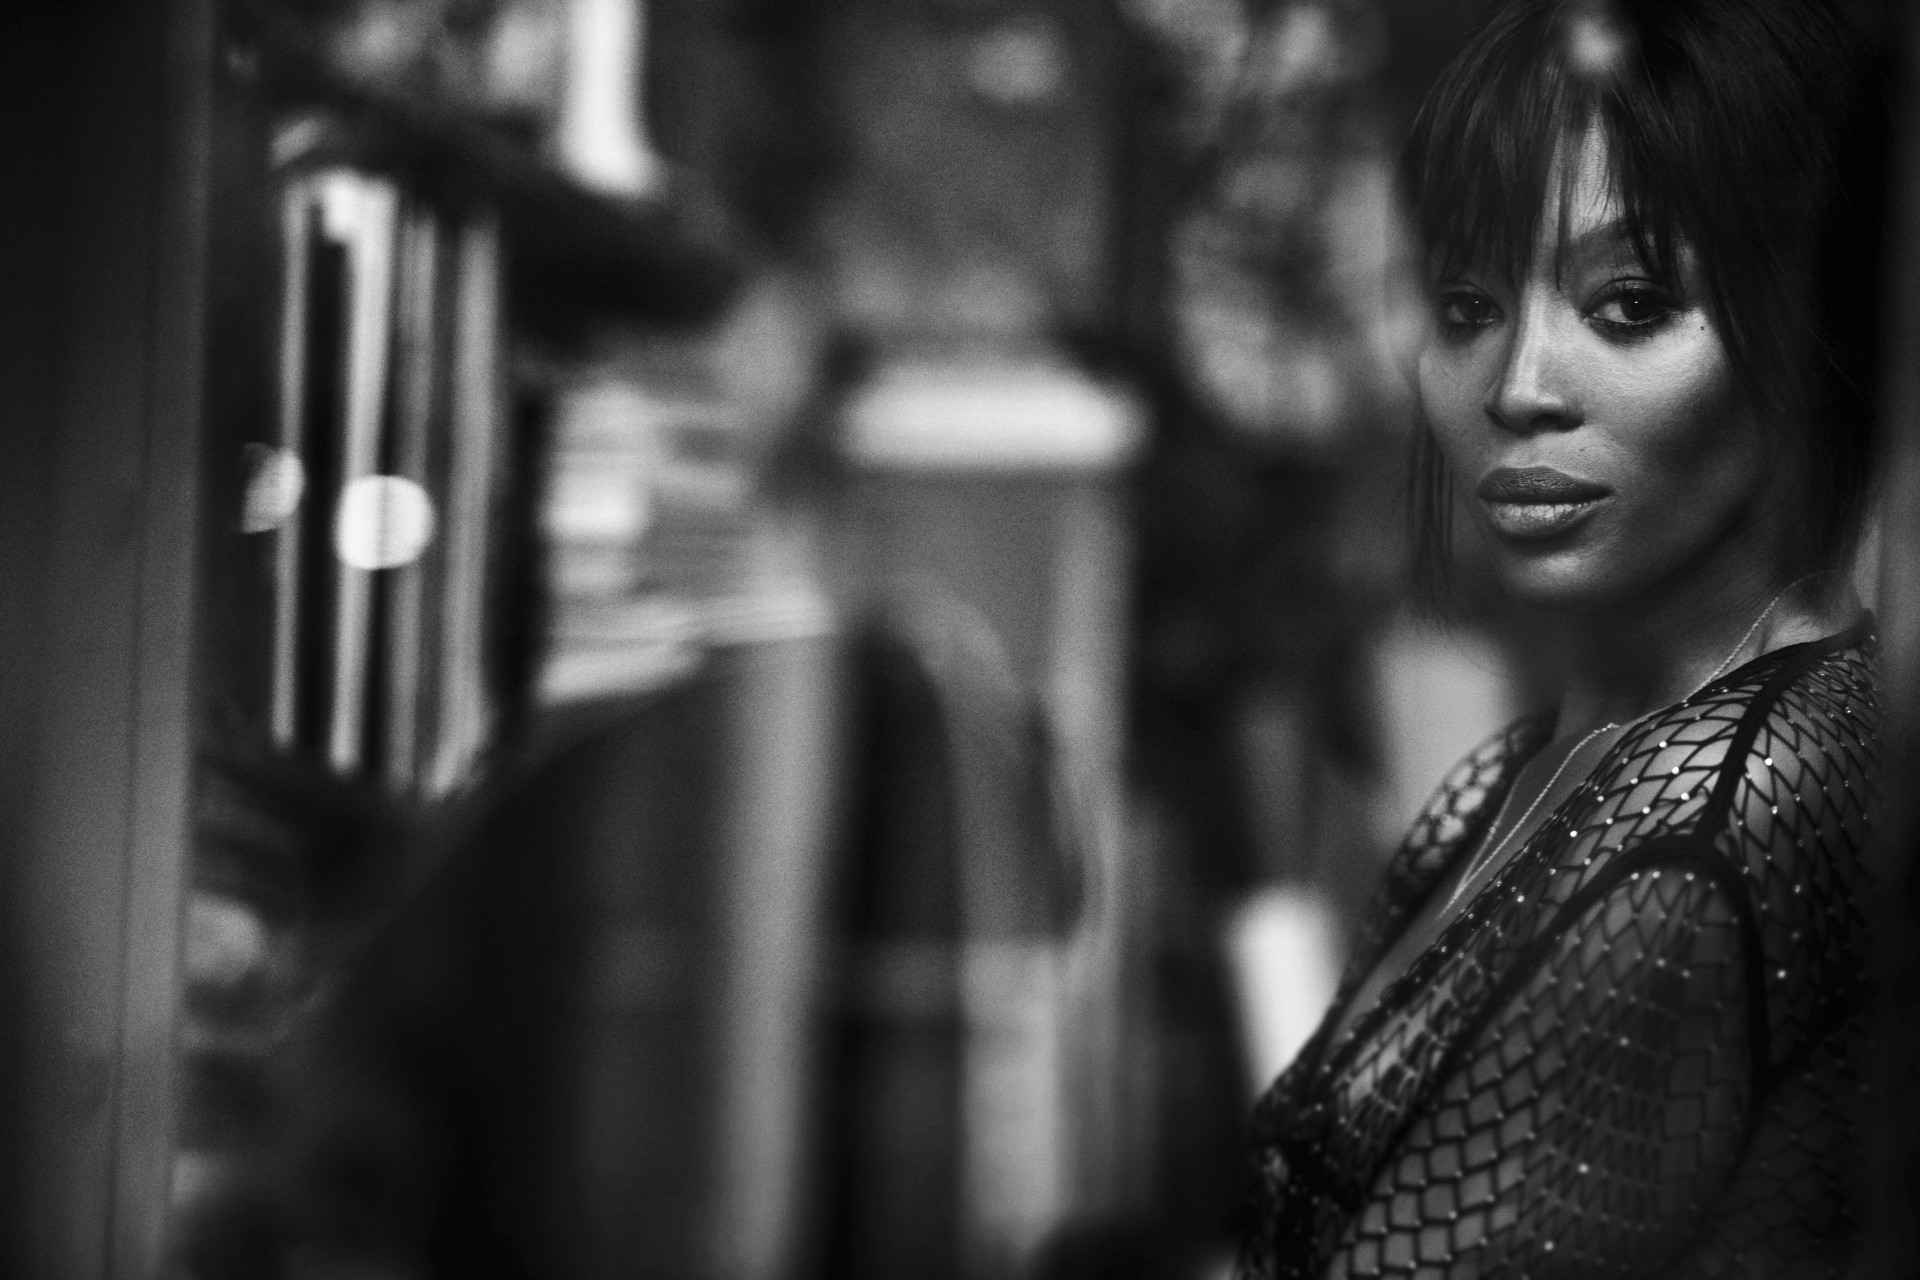 Naomi Campbell photographed by Peter Lindbergh